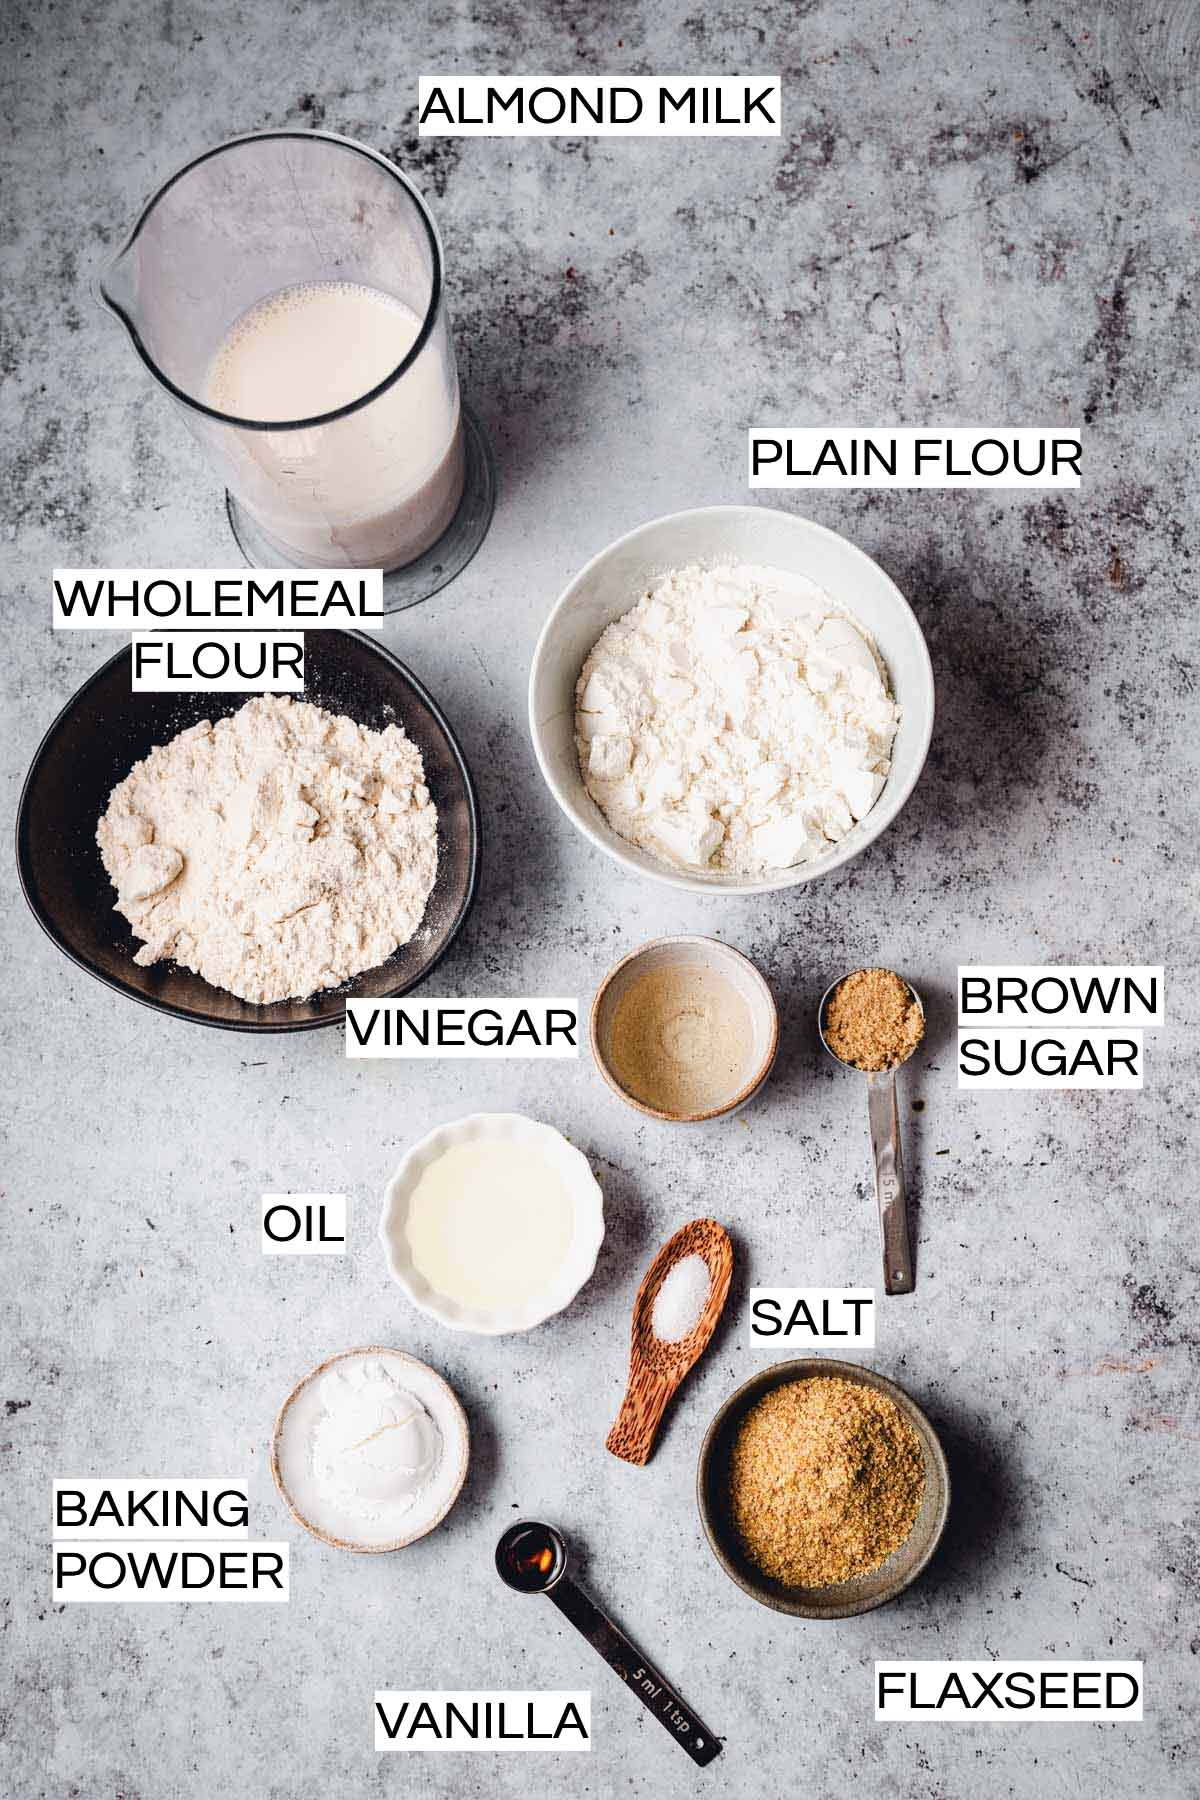 All ingredients needed to make waffles laid out on plates and bowls.